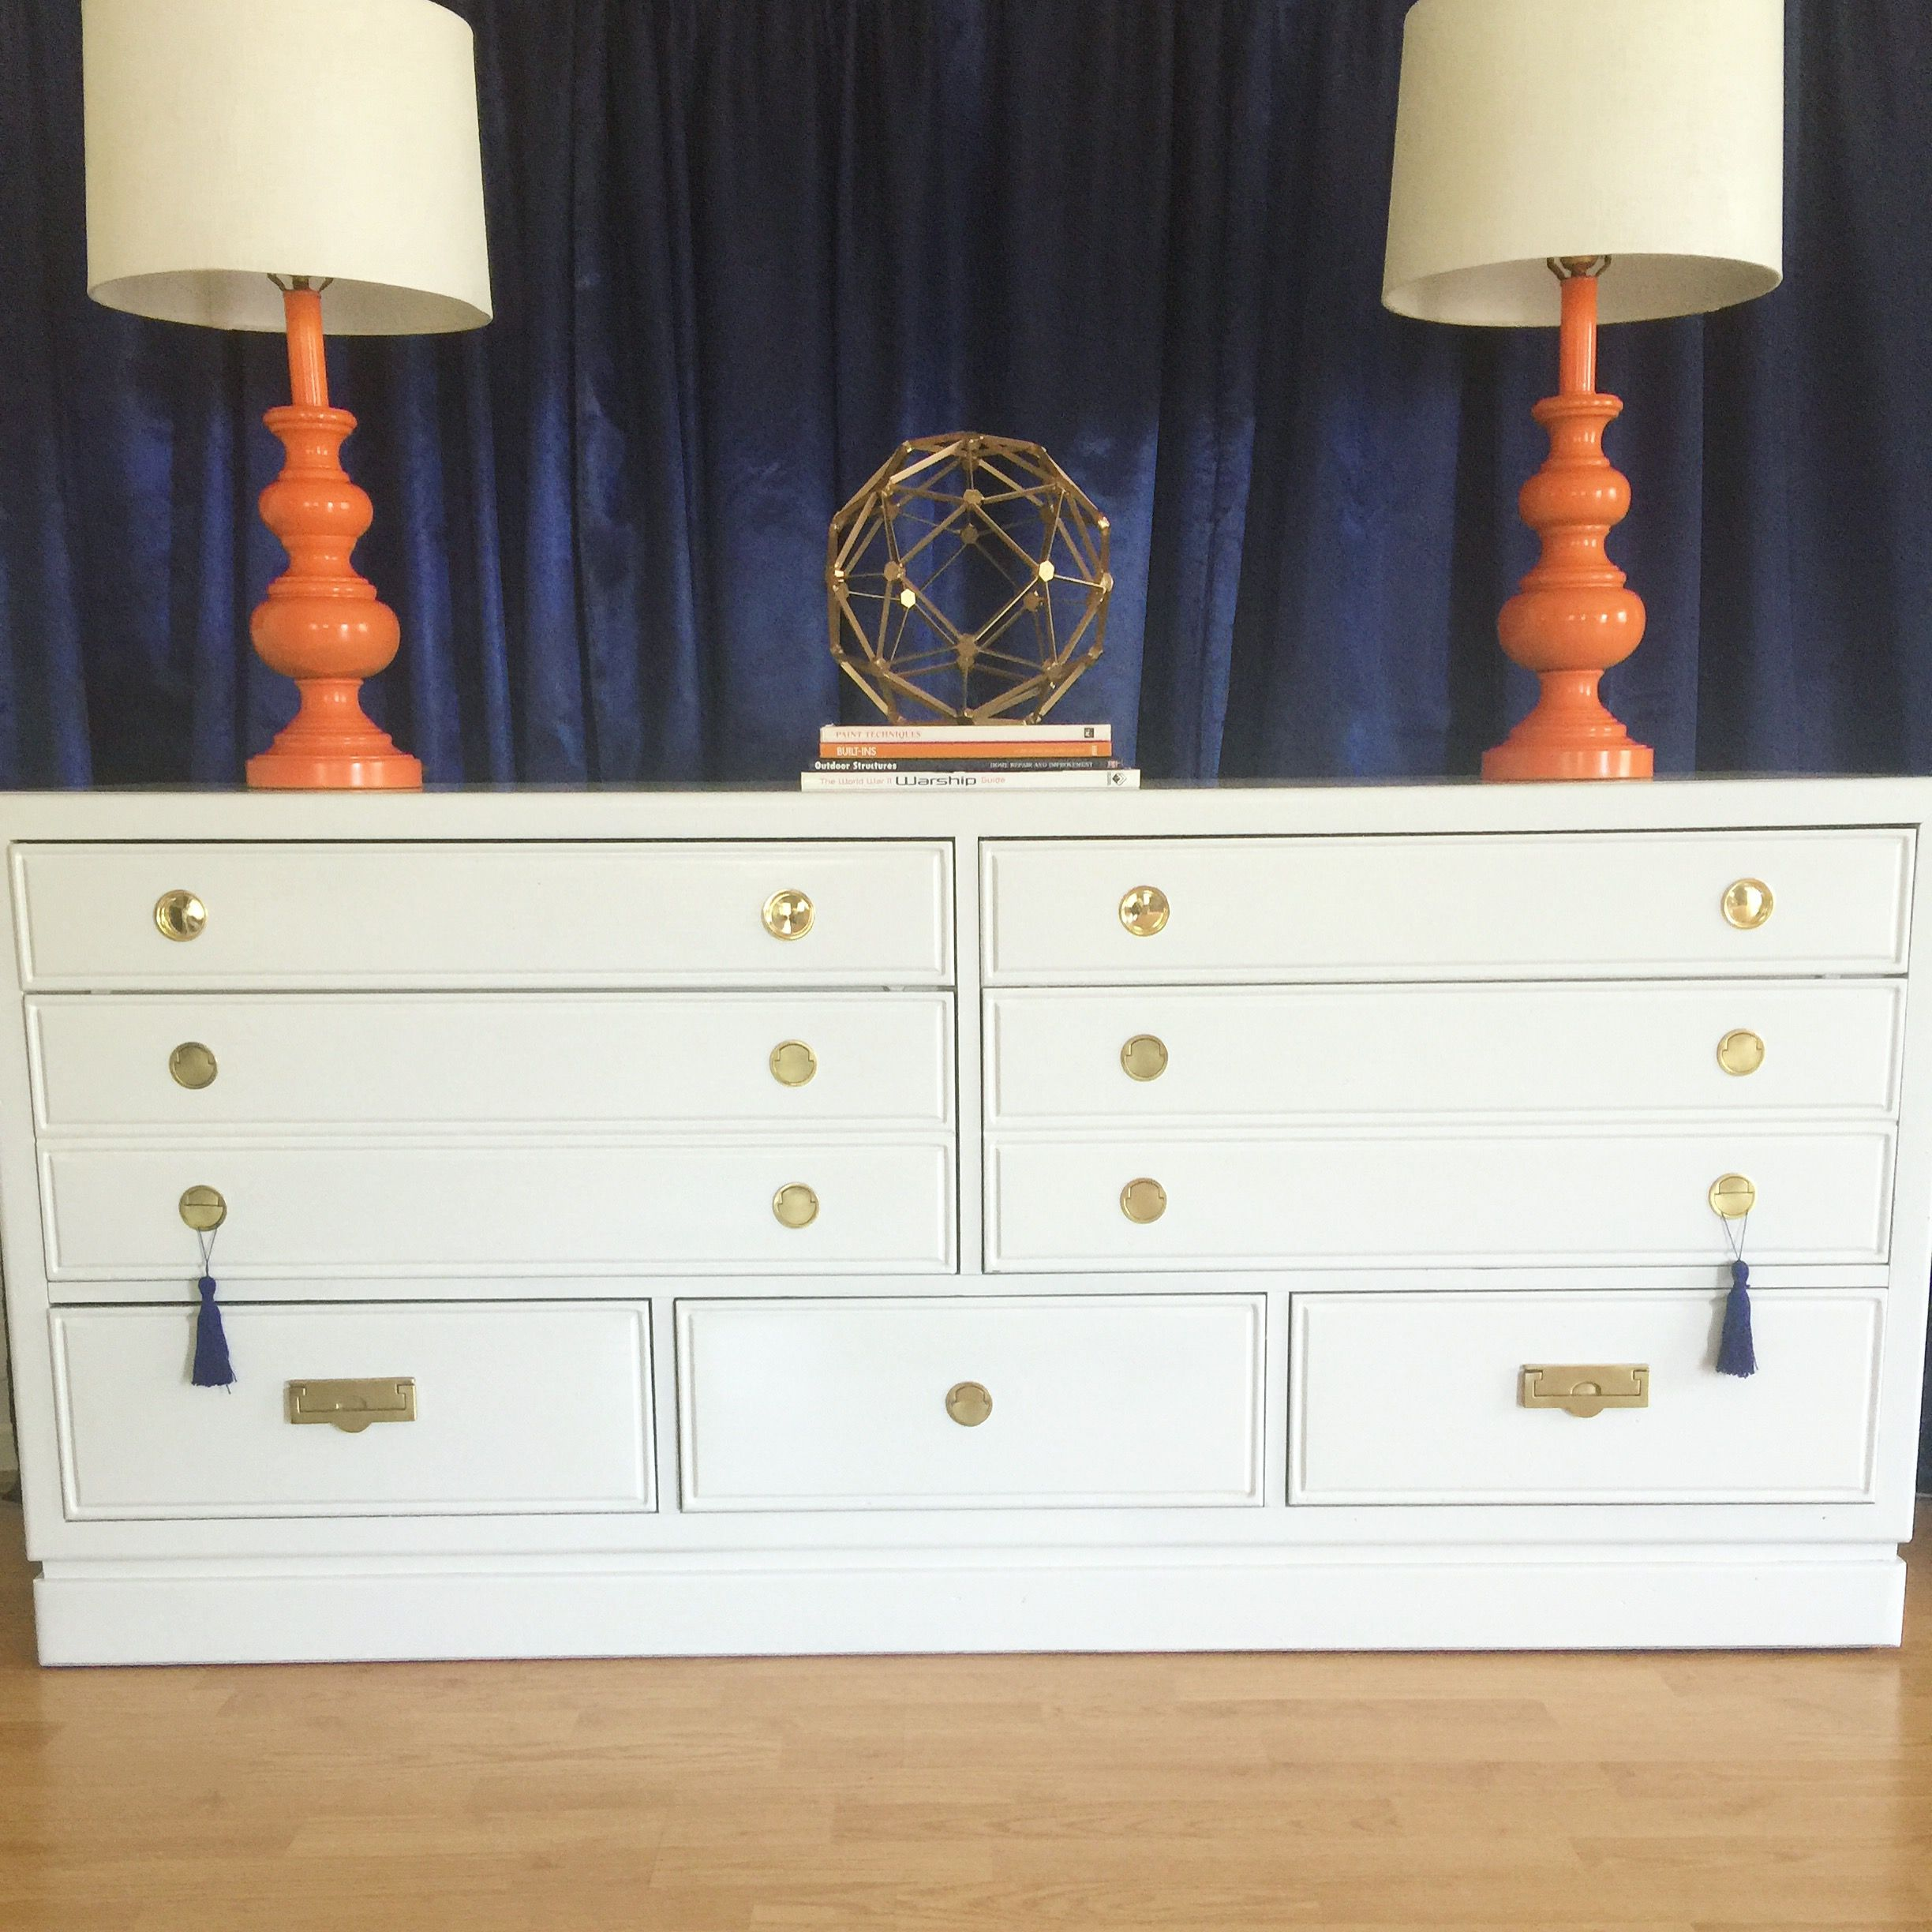 Thomasville Campaign Dresser Refurbished In High Gloss White Bedroom Decor Diy Bedroom Decor Campaign Dresser